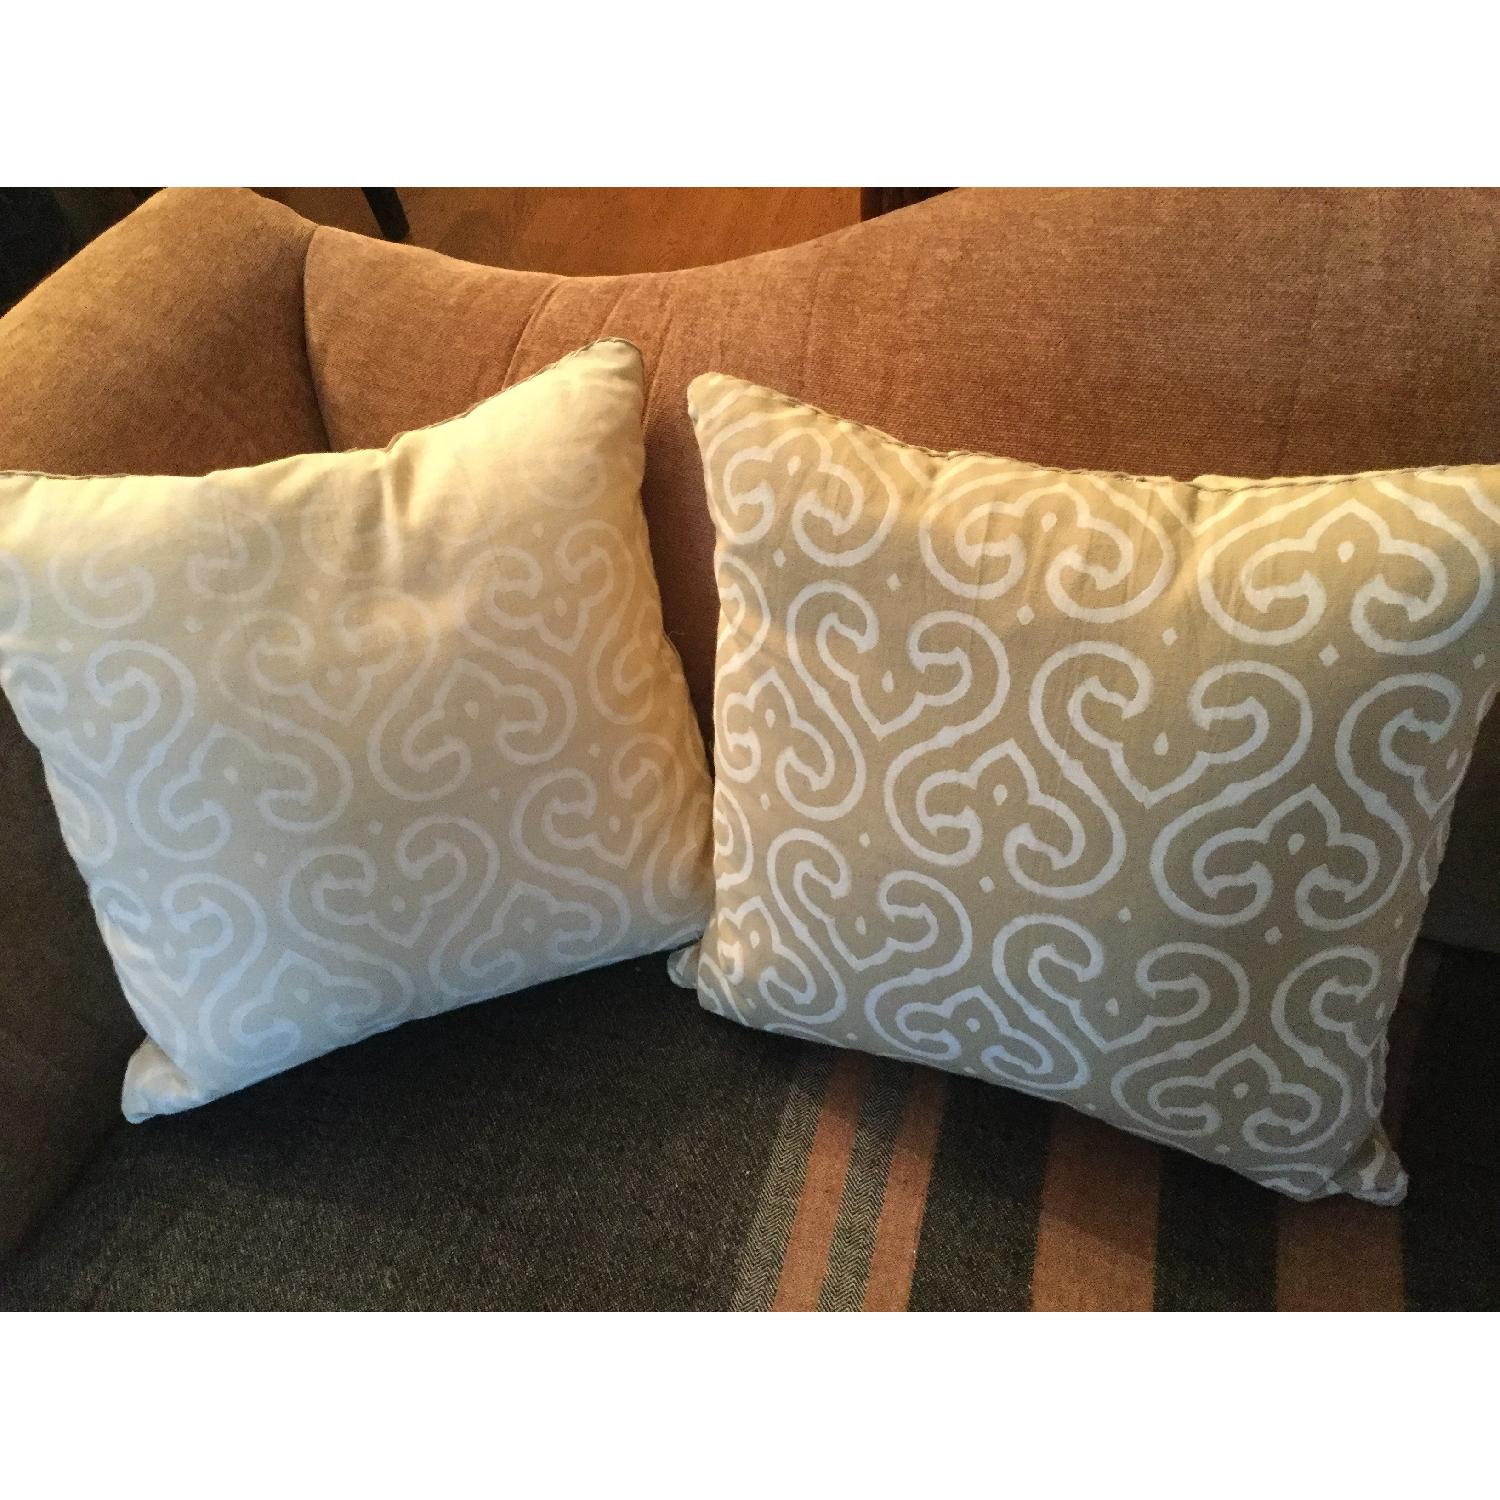 ABC Carpet And Home Madeline Weinrib Pillows-2